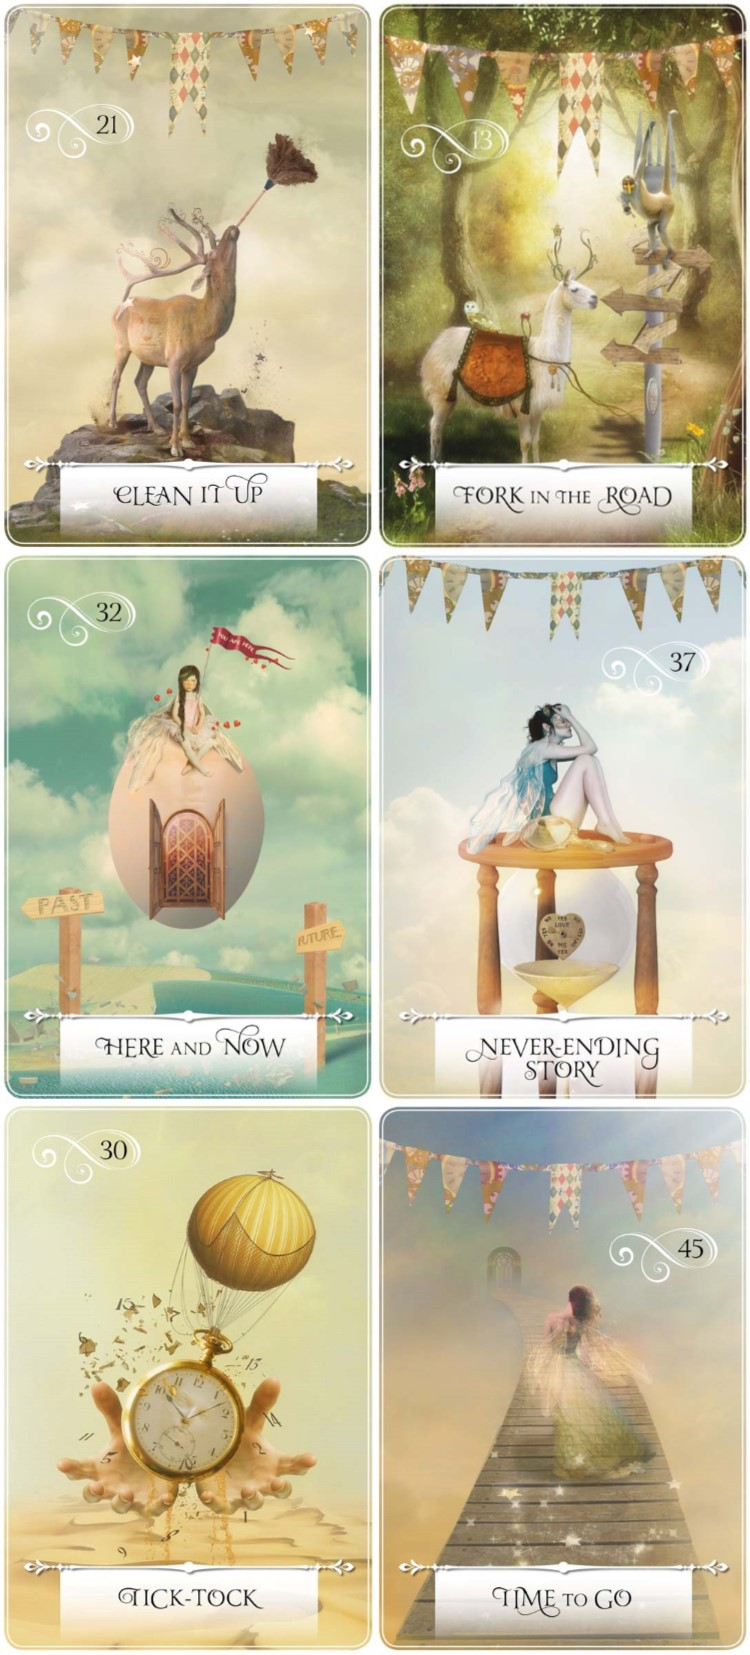 31 Days of Tarot, Day 8 Example Cards from Wisdom of the Oracle by Colette Baron-Reid